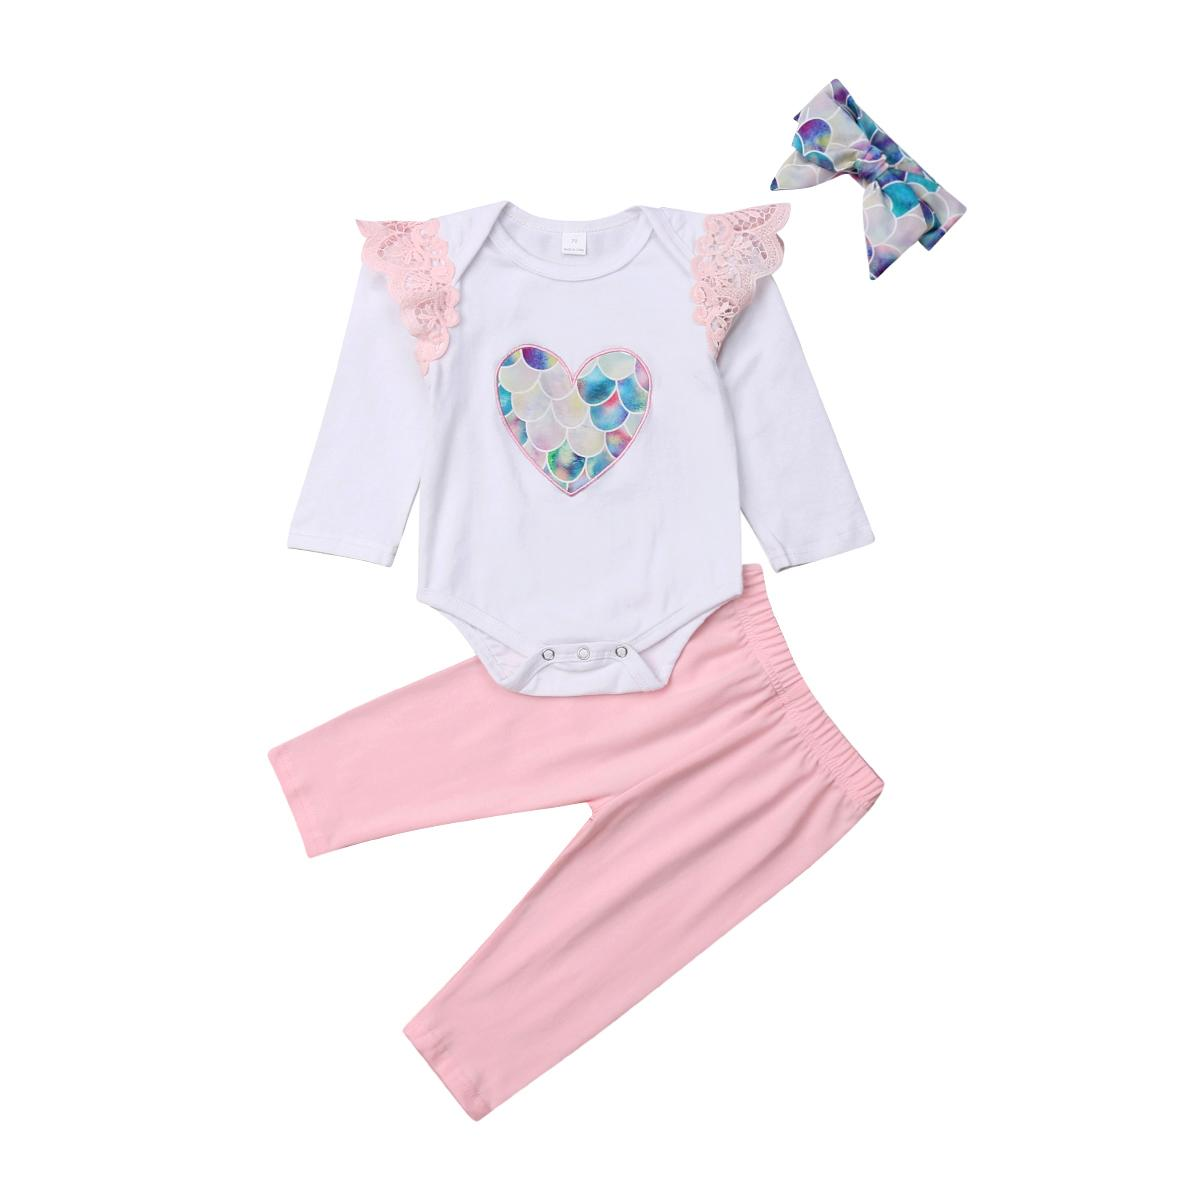 ed2bcff6e1db 2019 Cute Newborn Baby Girls Fish Scale Lace Romper Long Sleeve Tops Long  Pants Headband Outfits Clothes Set From Ycqz3